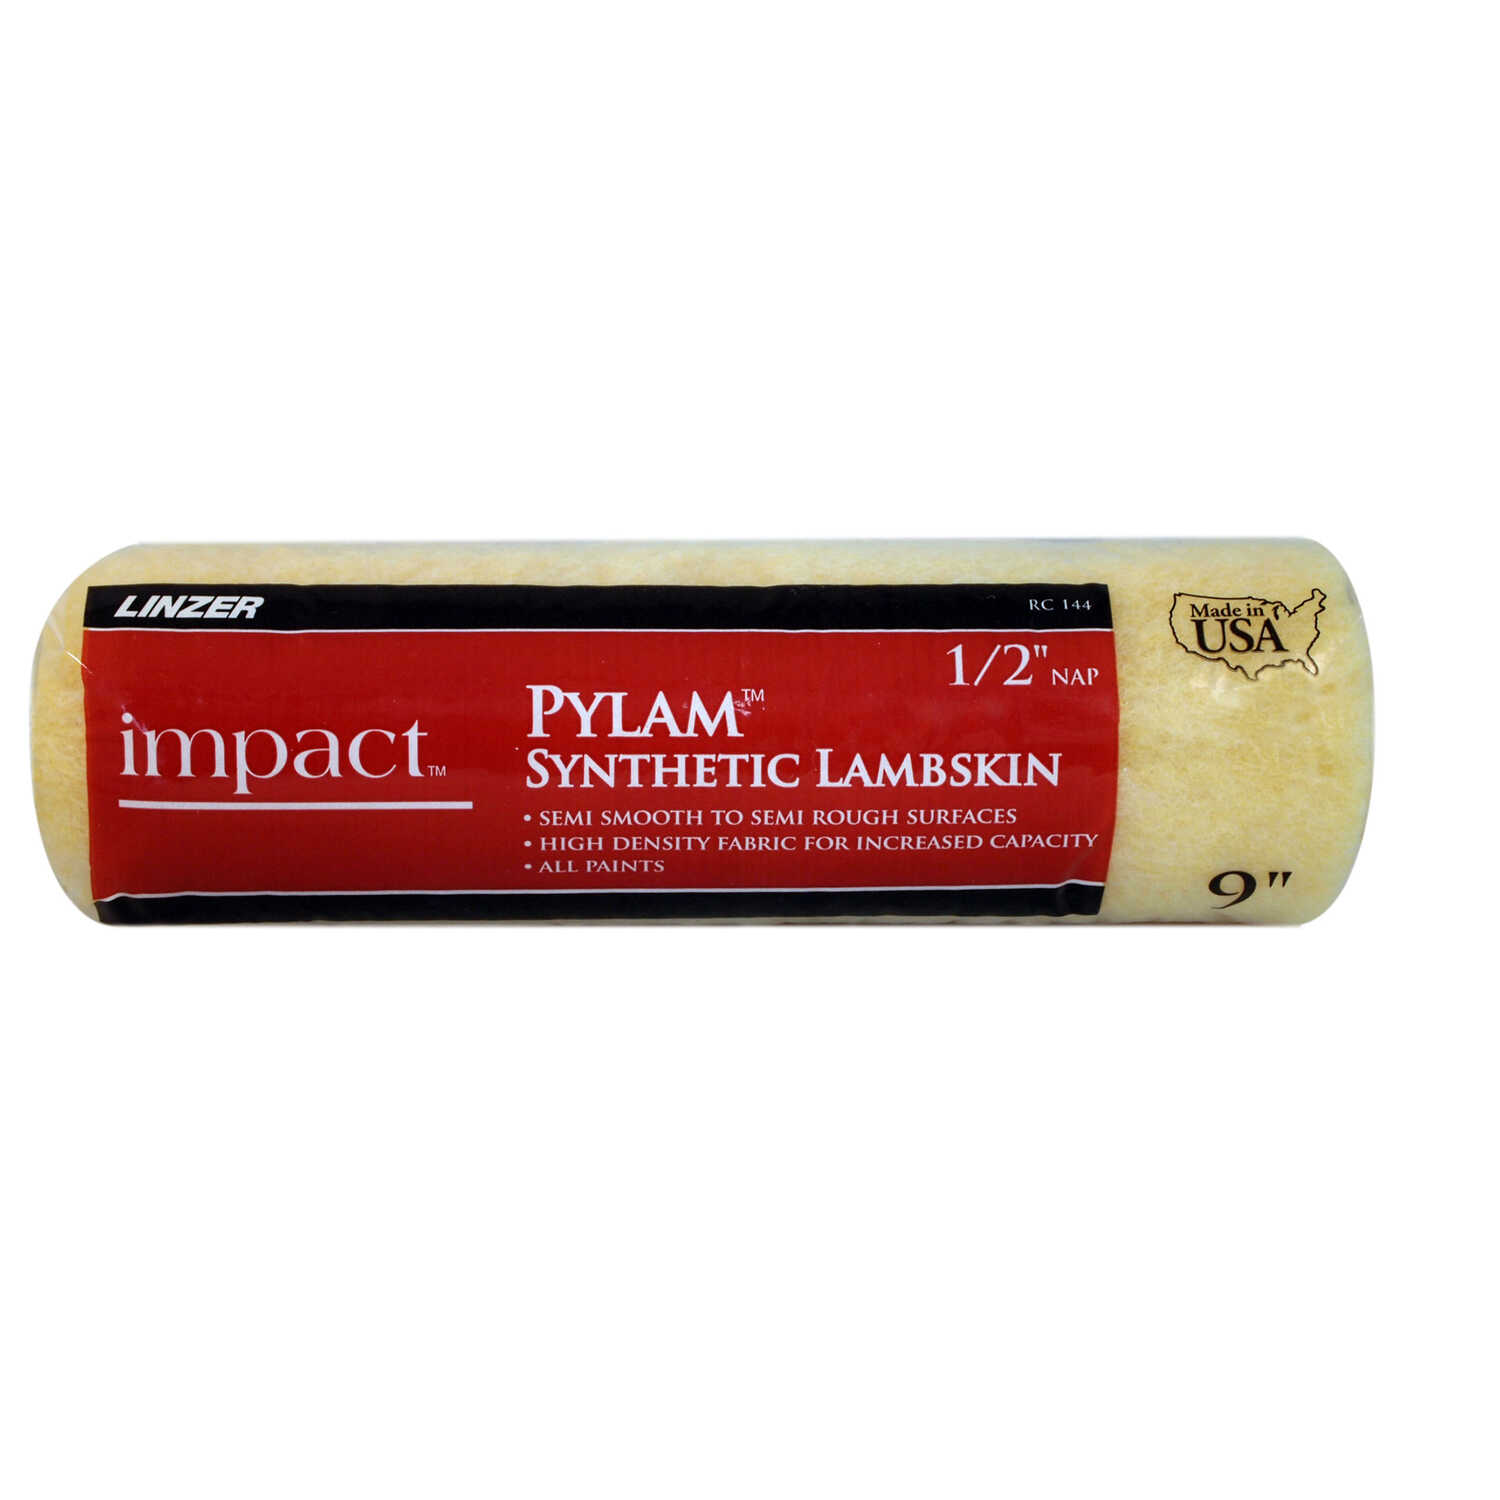 Linzer  Impact Pylam  Synthetic Lambskin  1/2 in.  x 9 in. W Regular  Paint Roller Cover  For Semi-S